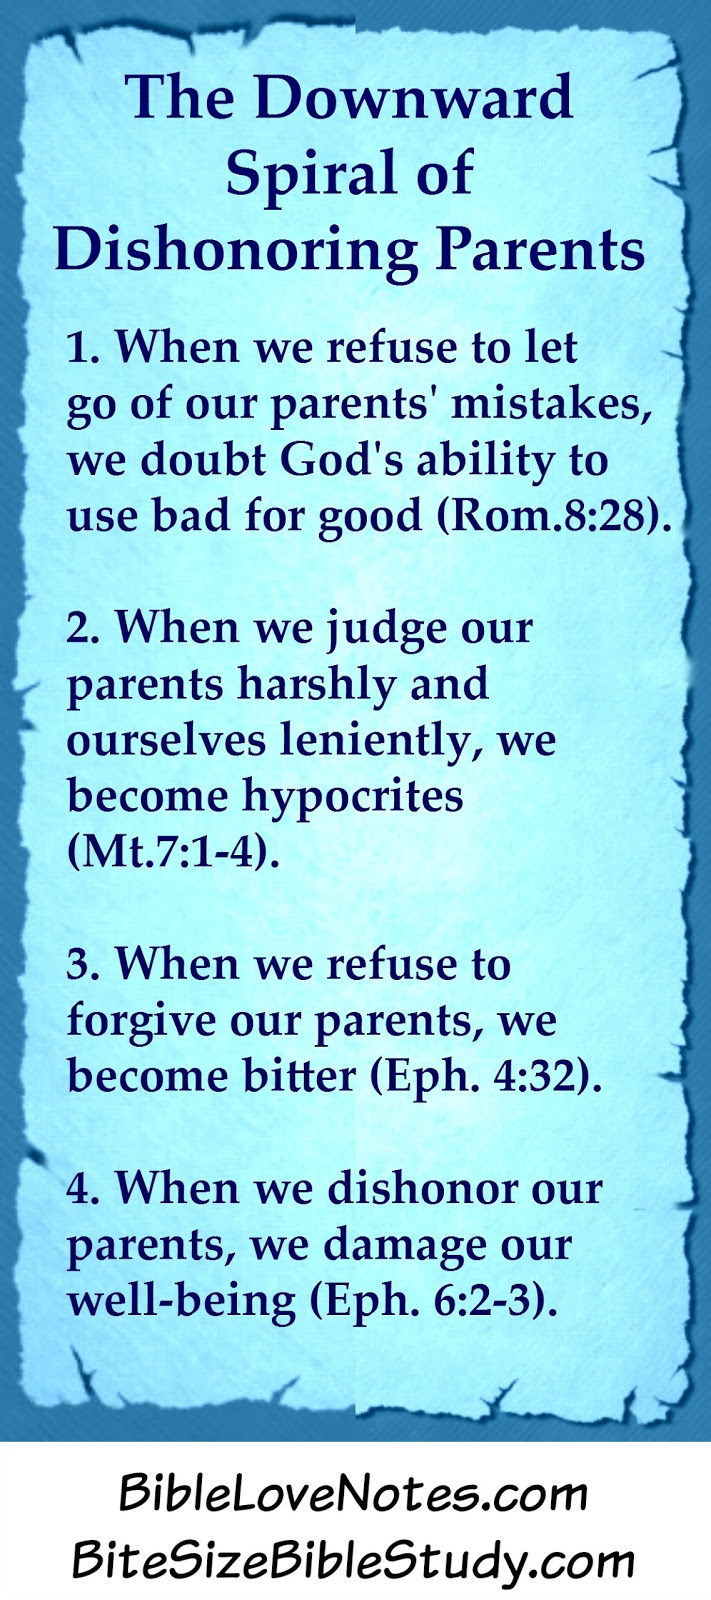 essays on honoring your parents This past weekend, my appreciation for having parents was overcome   according to the fifth commandment, you shall honor your father and mother   and essays in an online life journal via their free stage of life account.